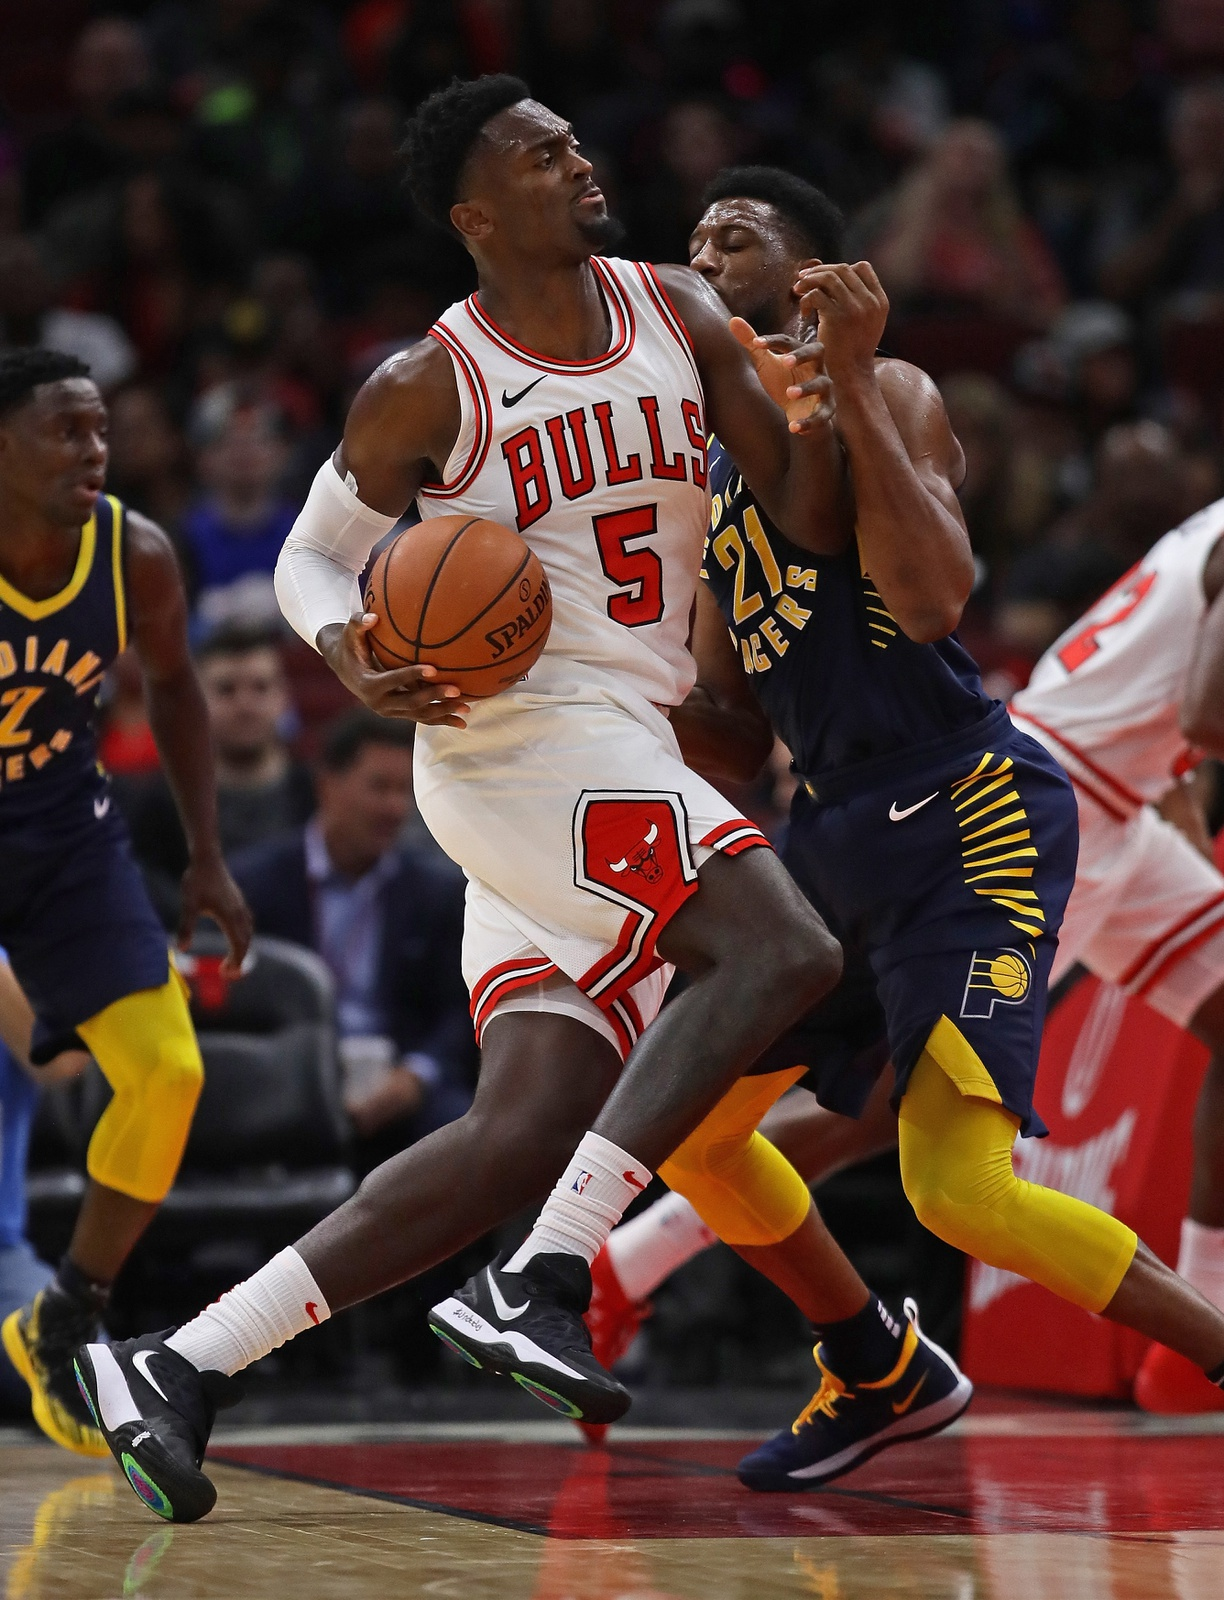 Bobby Portis #5 of the Chicago Bulls drives against Thaddeus Young #21 of the Indiana Pacers during a preseason game at the United Center on October 10, 2018 in Chicago, Illinois.